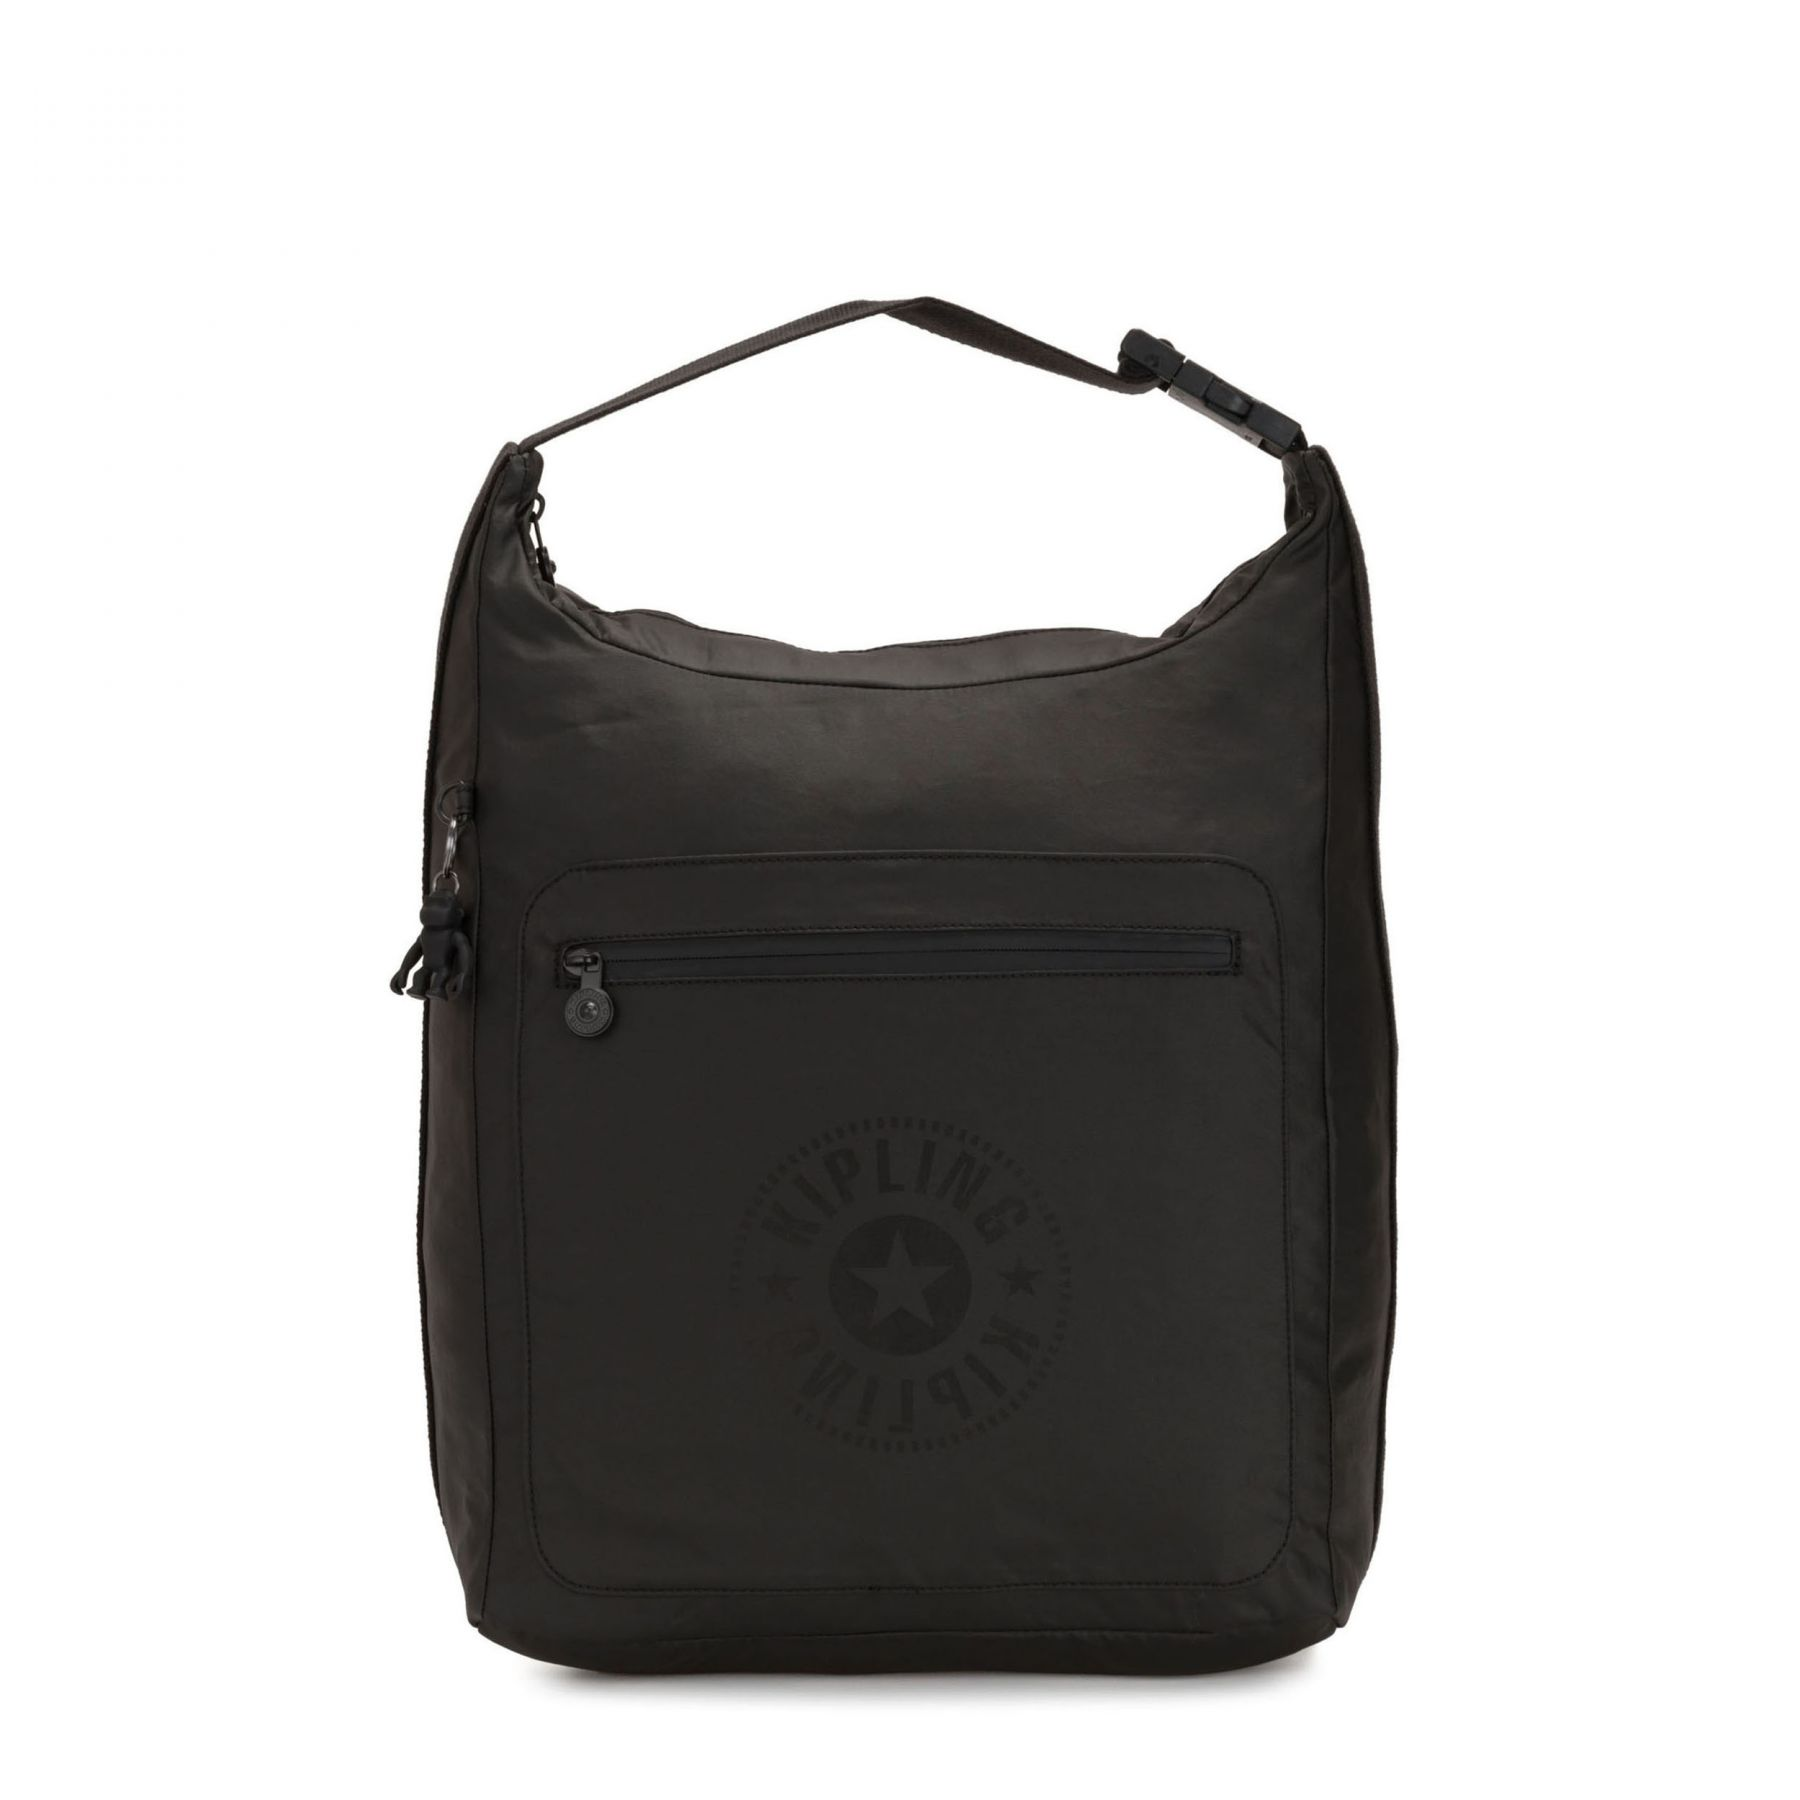 MORIE BACKPACKS by Kipling - Front view